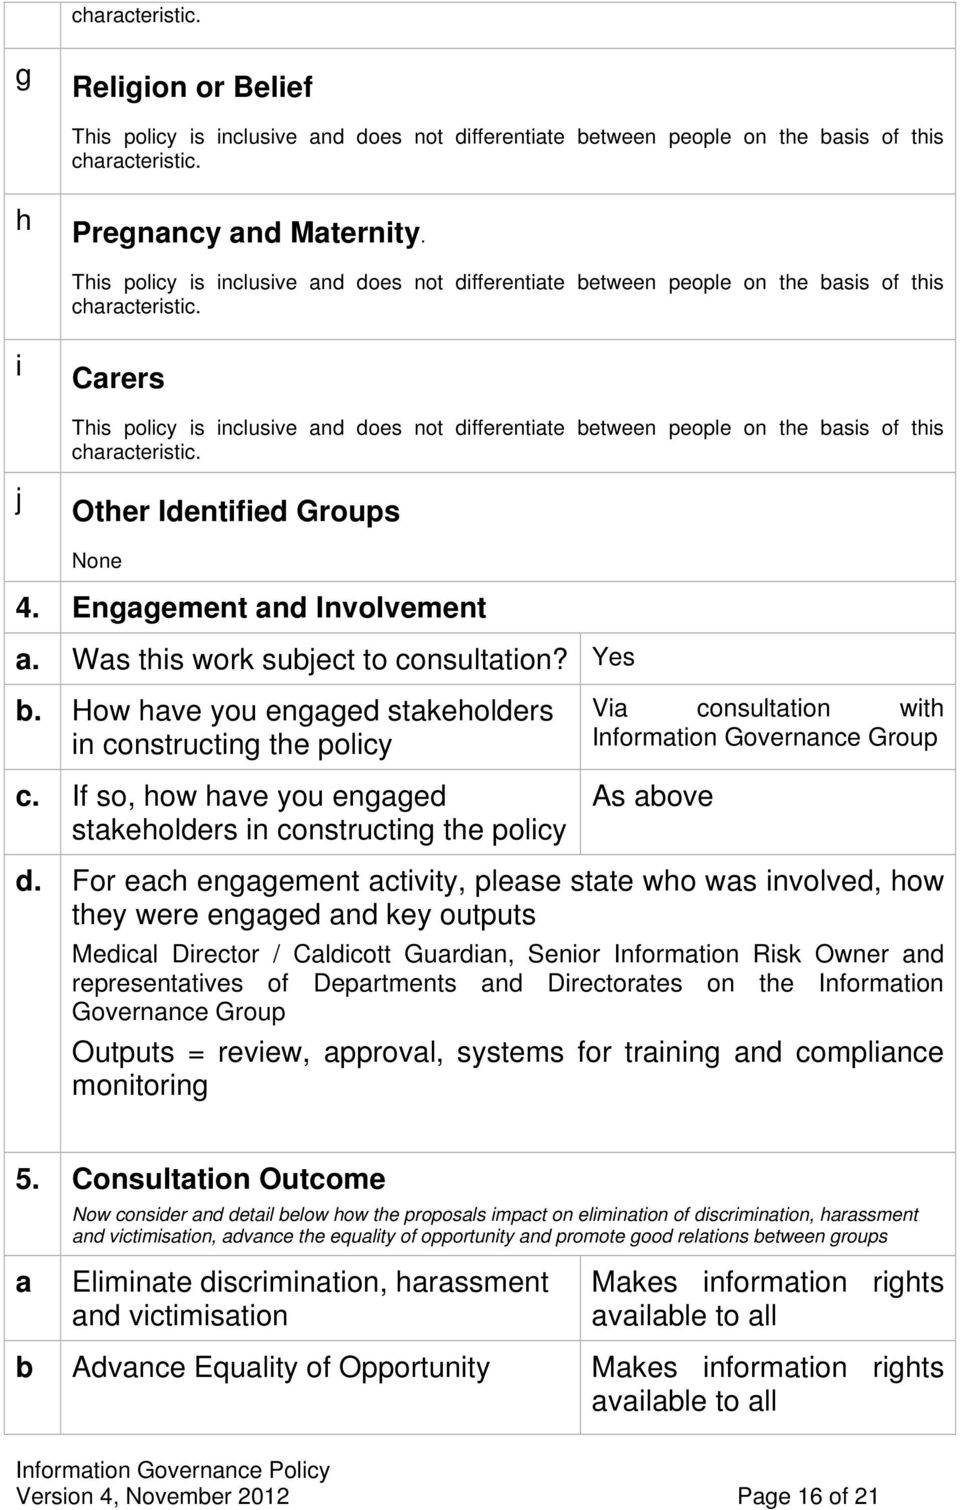 i Carers  j Other Identified Groups None 4. Engagement and Involvement a. Was this work subject to consultation? b. How have you engaged stakeholders in constructing the policy c.